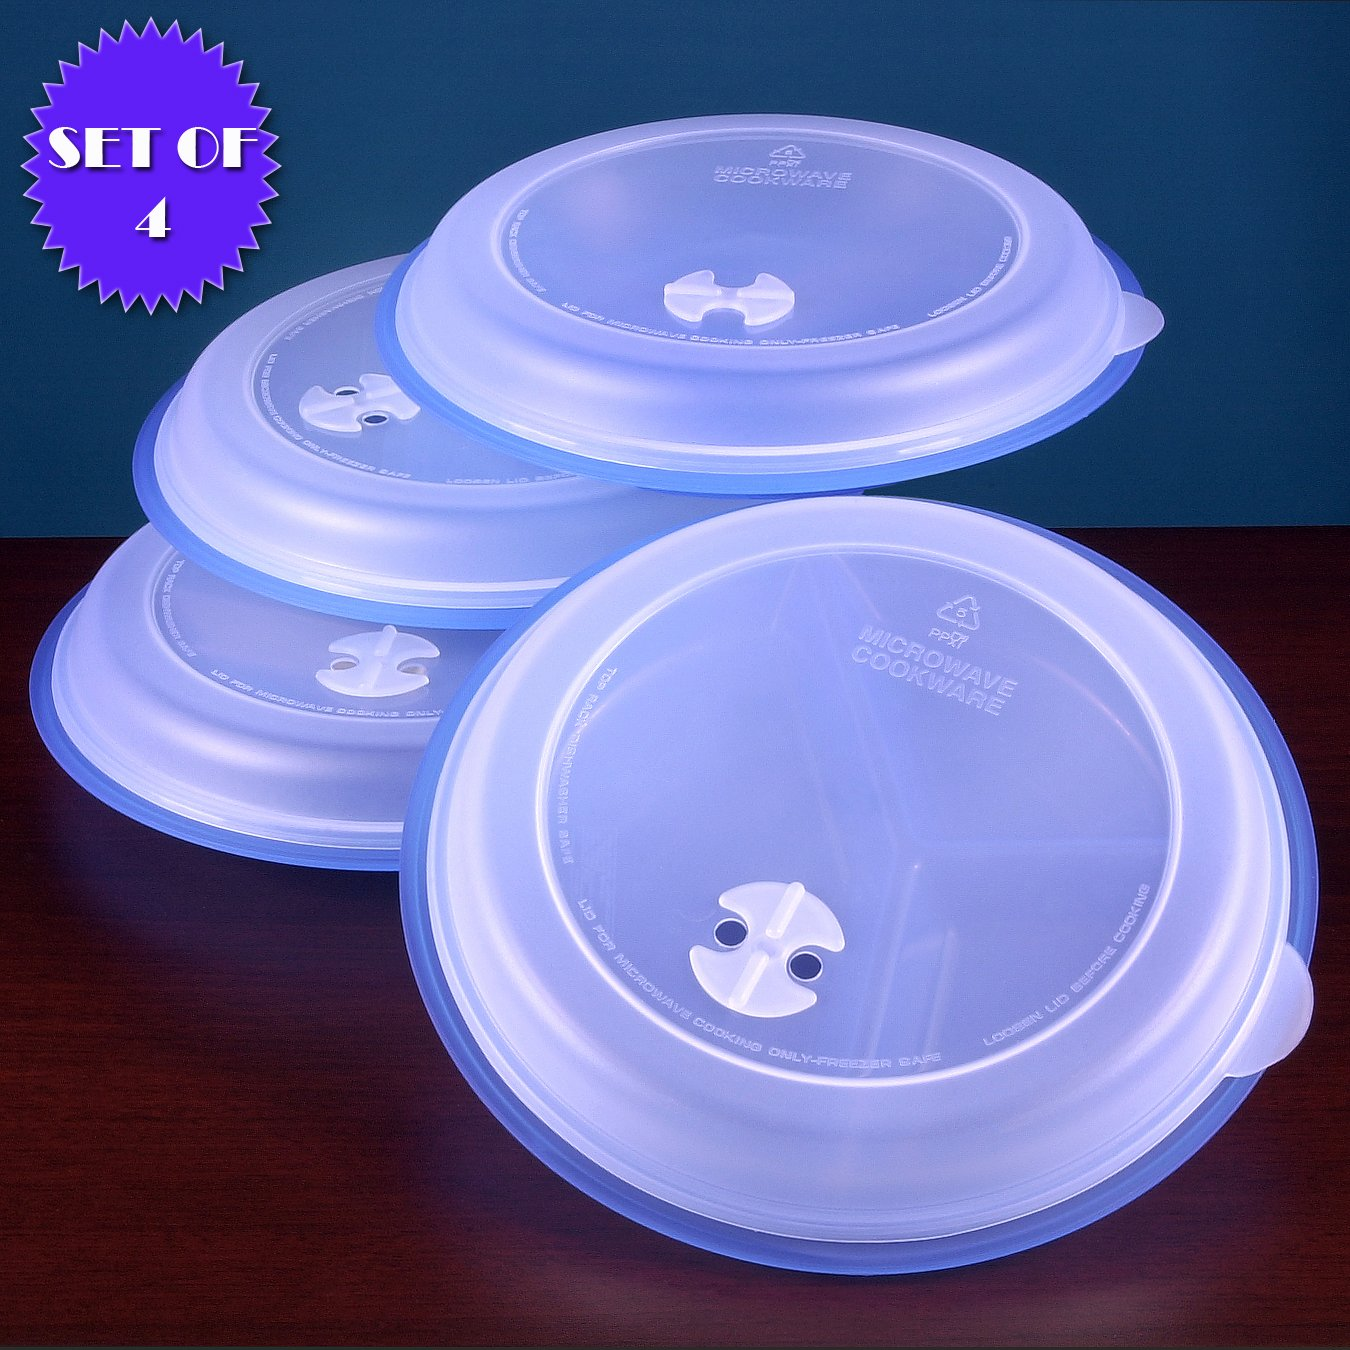 Amazon.com MICROWAVE DIVIDED PLATES WITH VENTED LIDS (Set of 8 blue) Kitchen Storage And Organization Product Sets Kitchen u0026 Dining  sc 1 st  Amazon.com : microwave dinner plates - pezcame.com